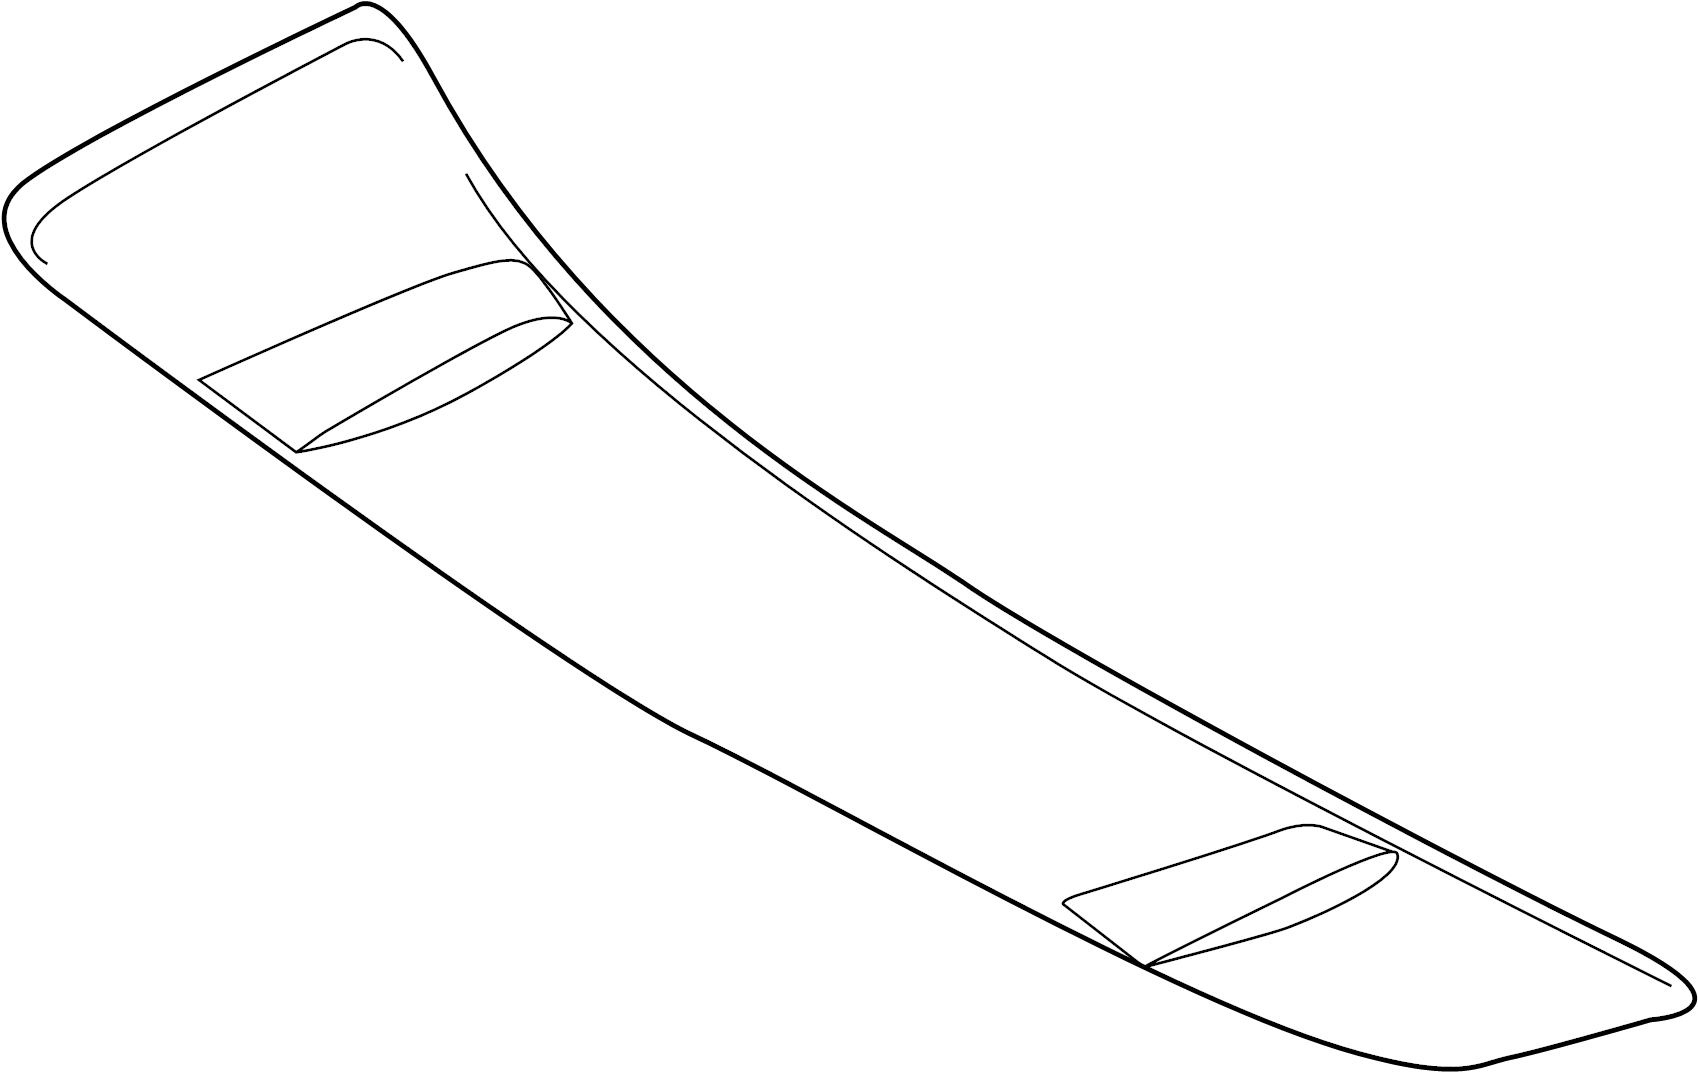 2013 dodge charger underbody diagram